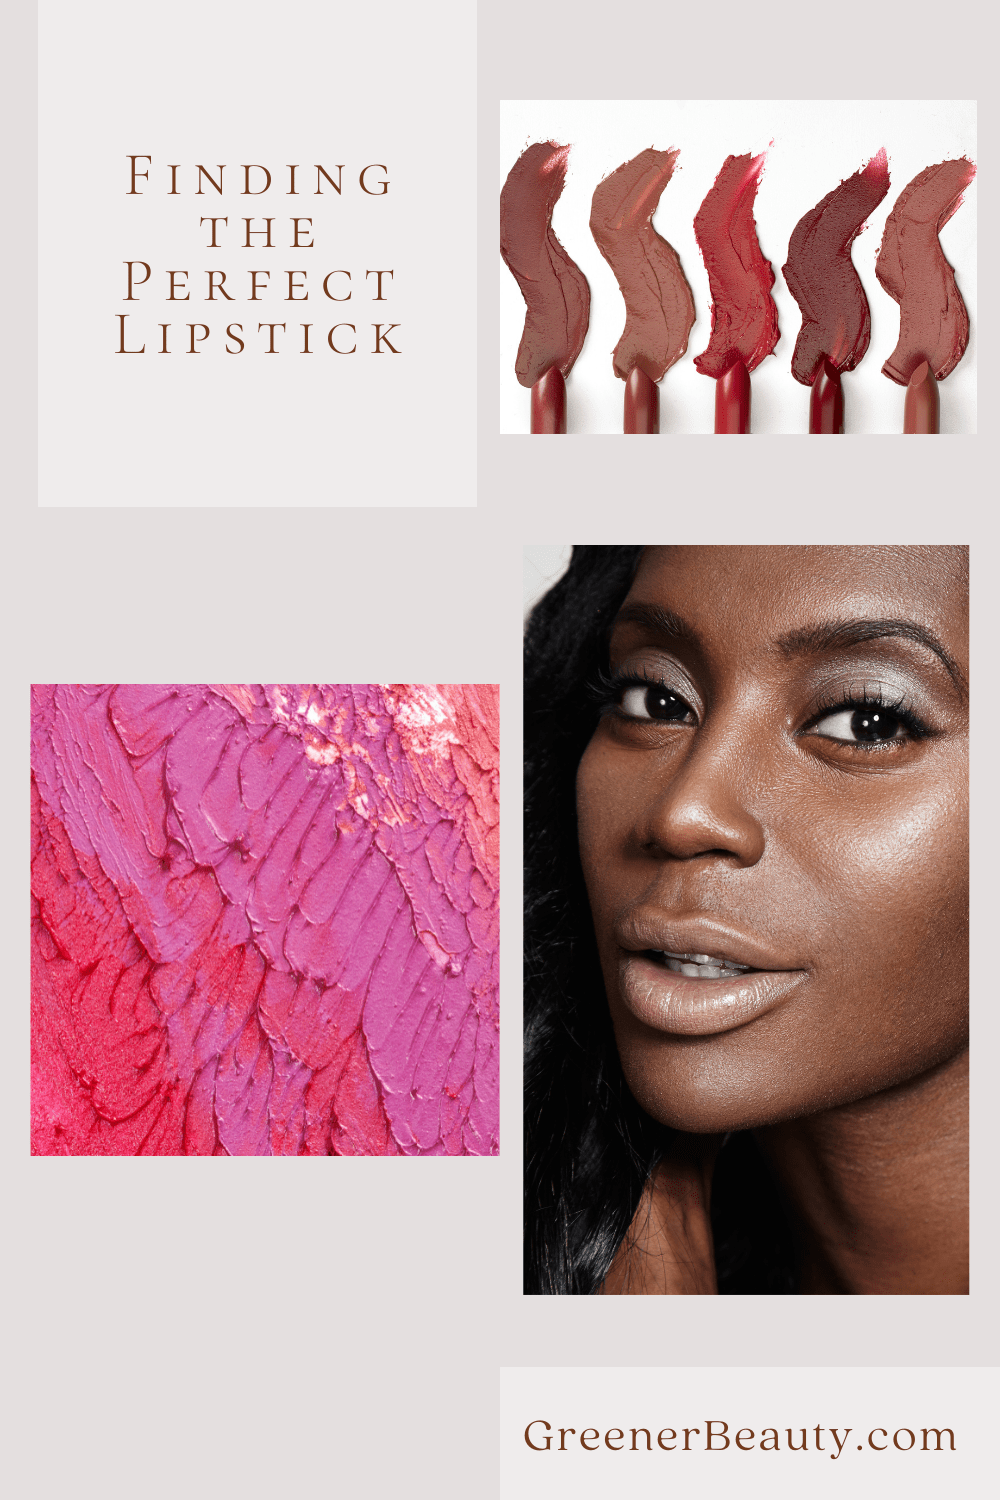 Finding the Perfect Lipstick